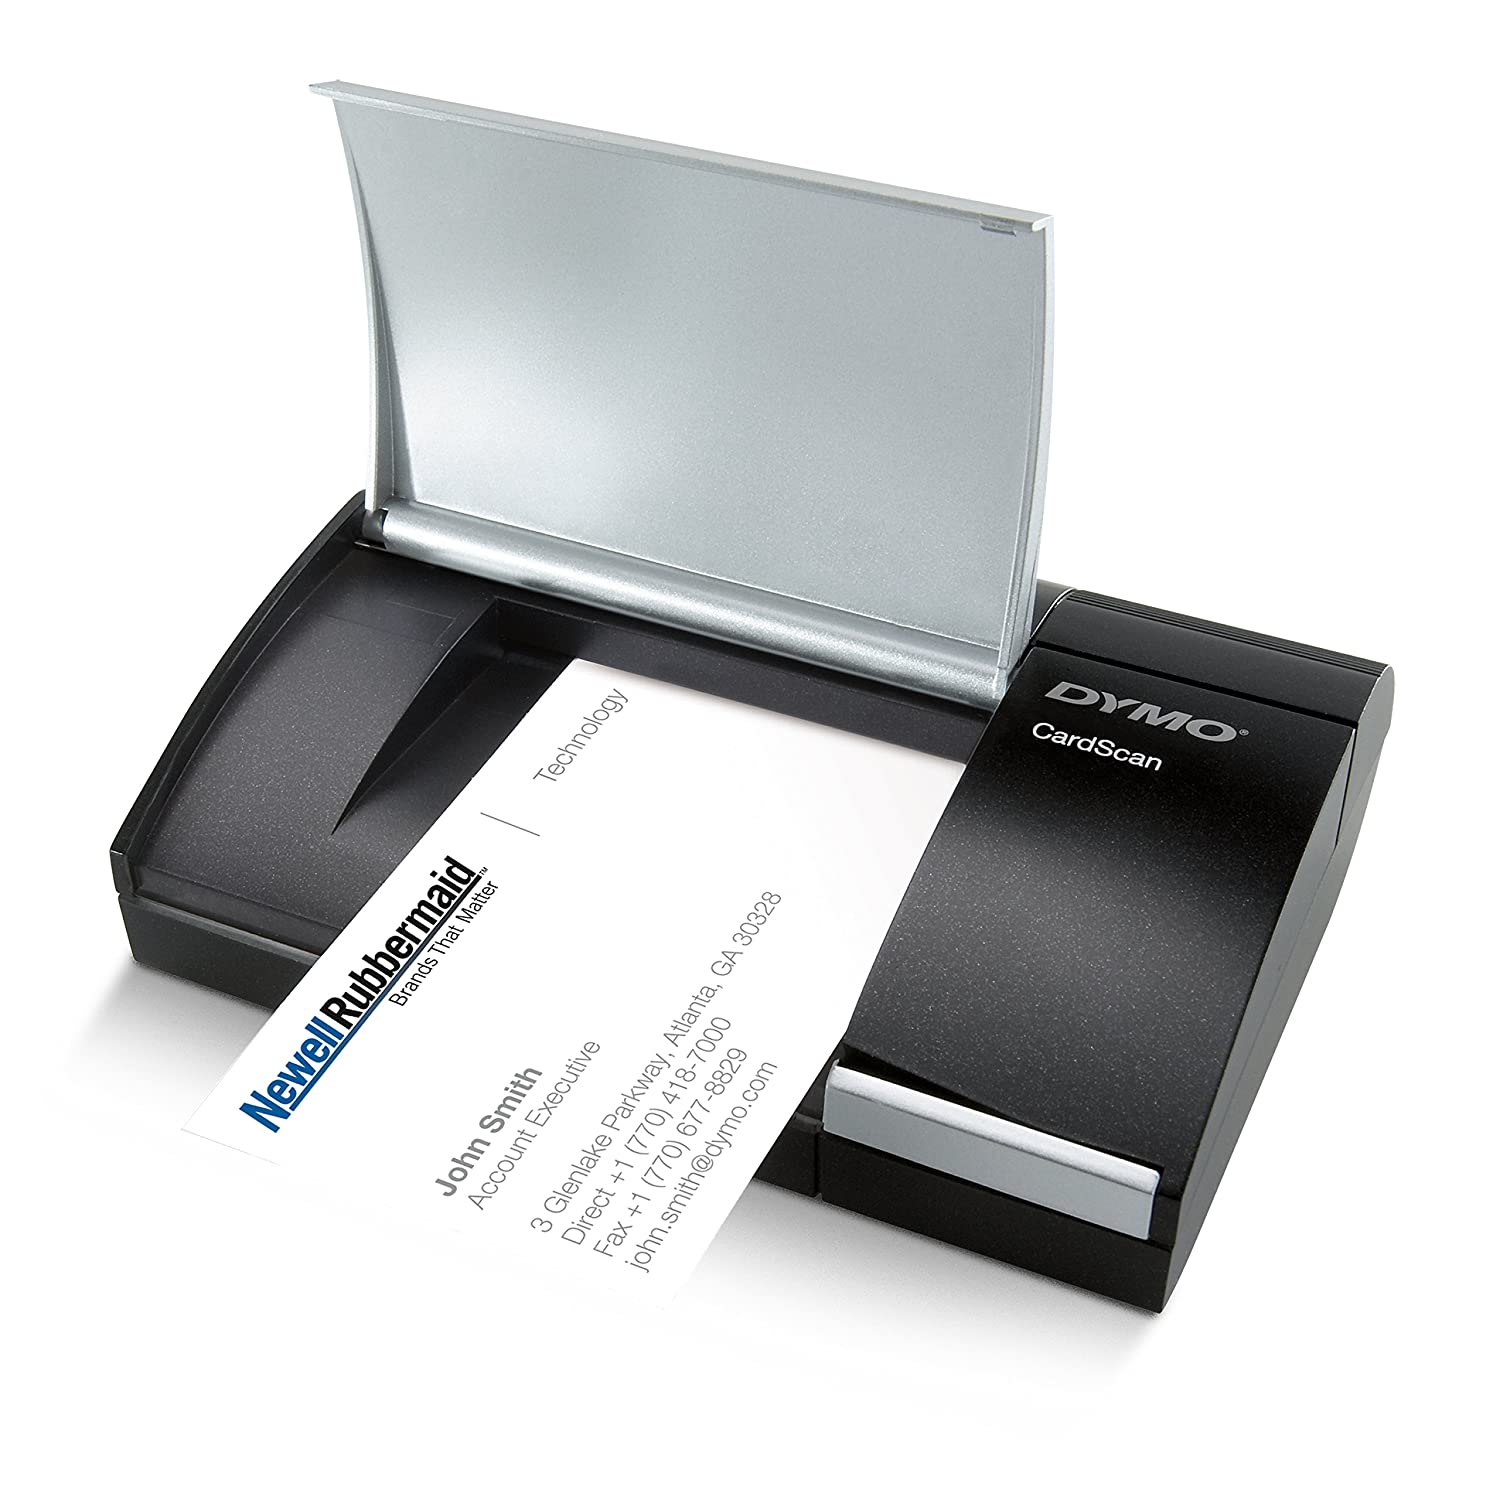 Amazon.com: DYMO 1760685 CardScan Personal Card Scanner: Electronics